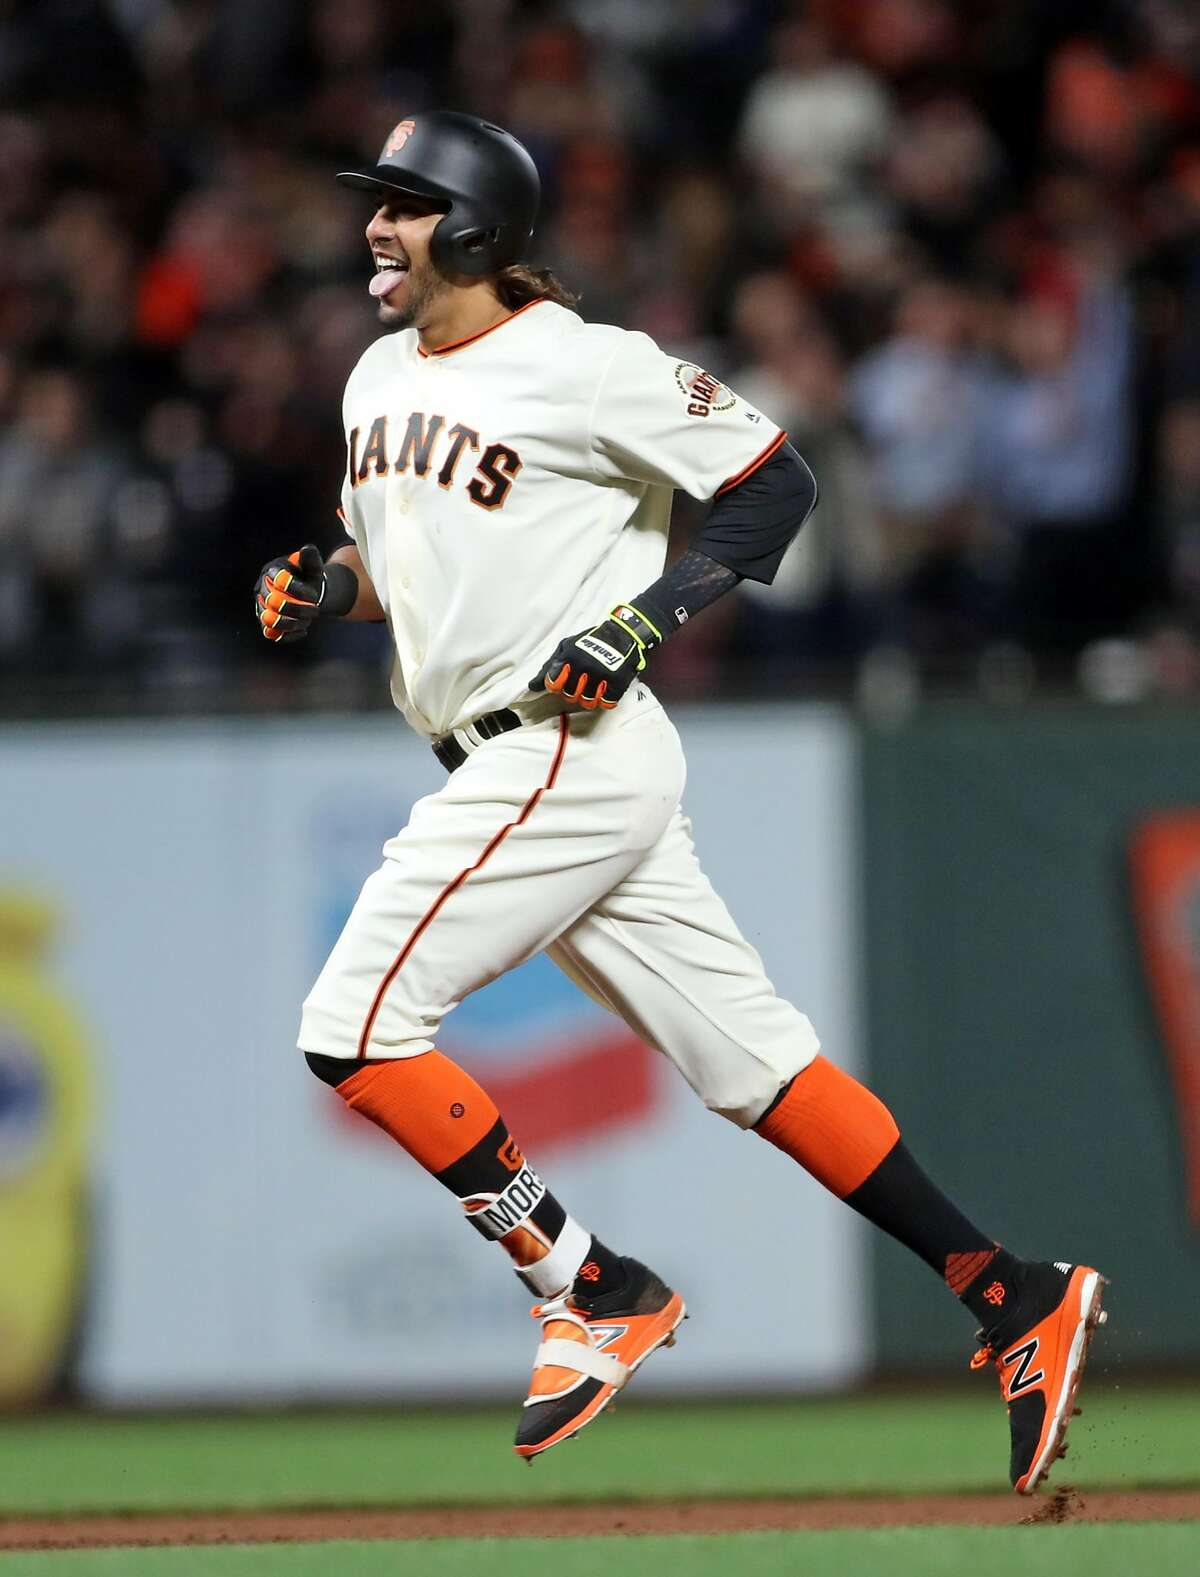 Michael Morse is sanguine about his fate on a last-place team once he is healthy: